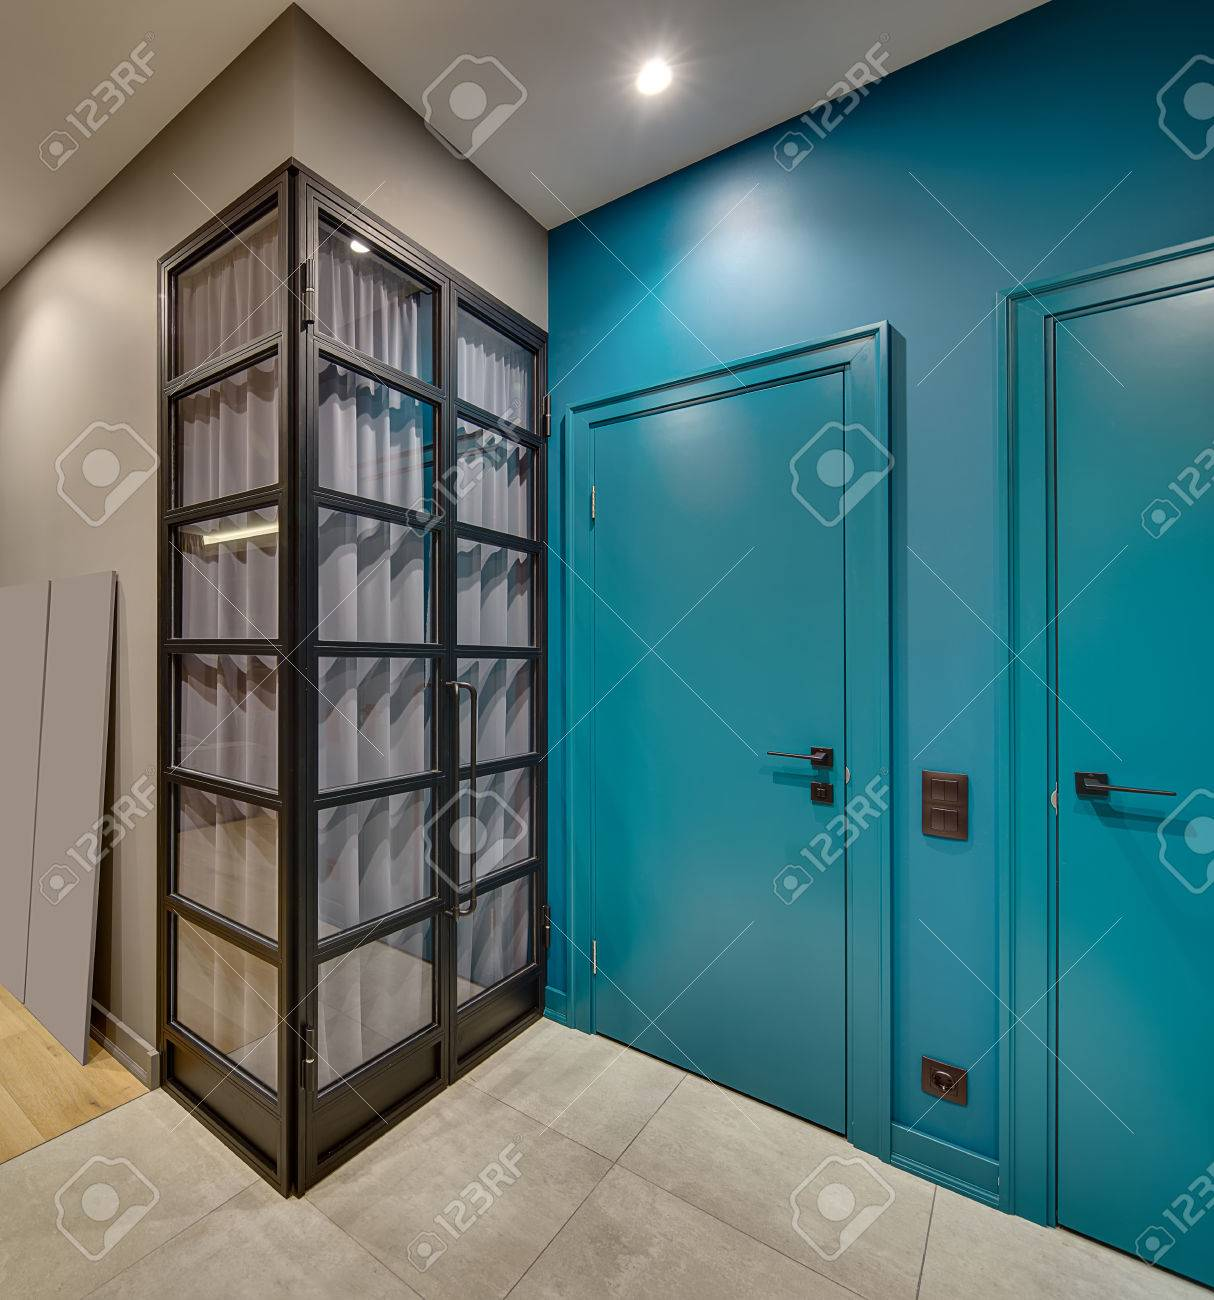 Contemporary Interior With Two Blue Doors On The Same Wall And ...